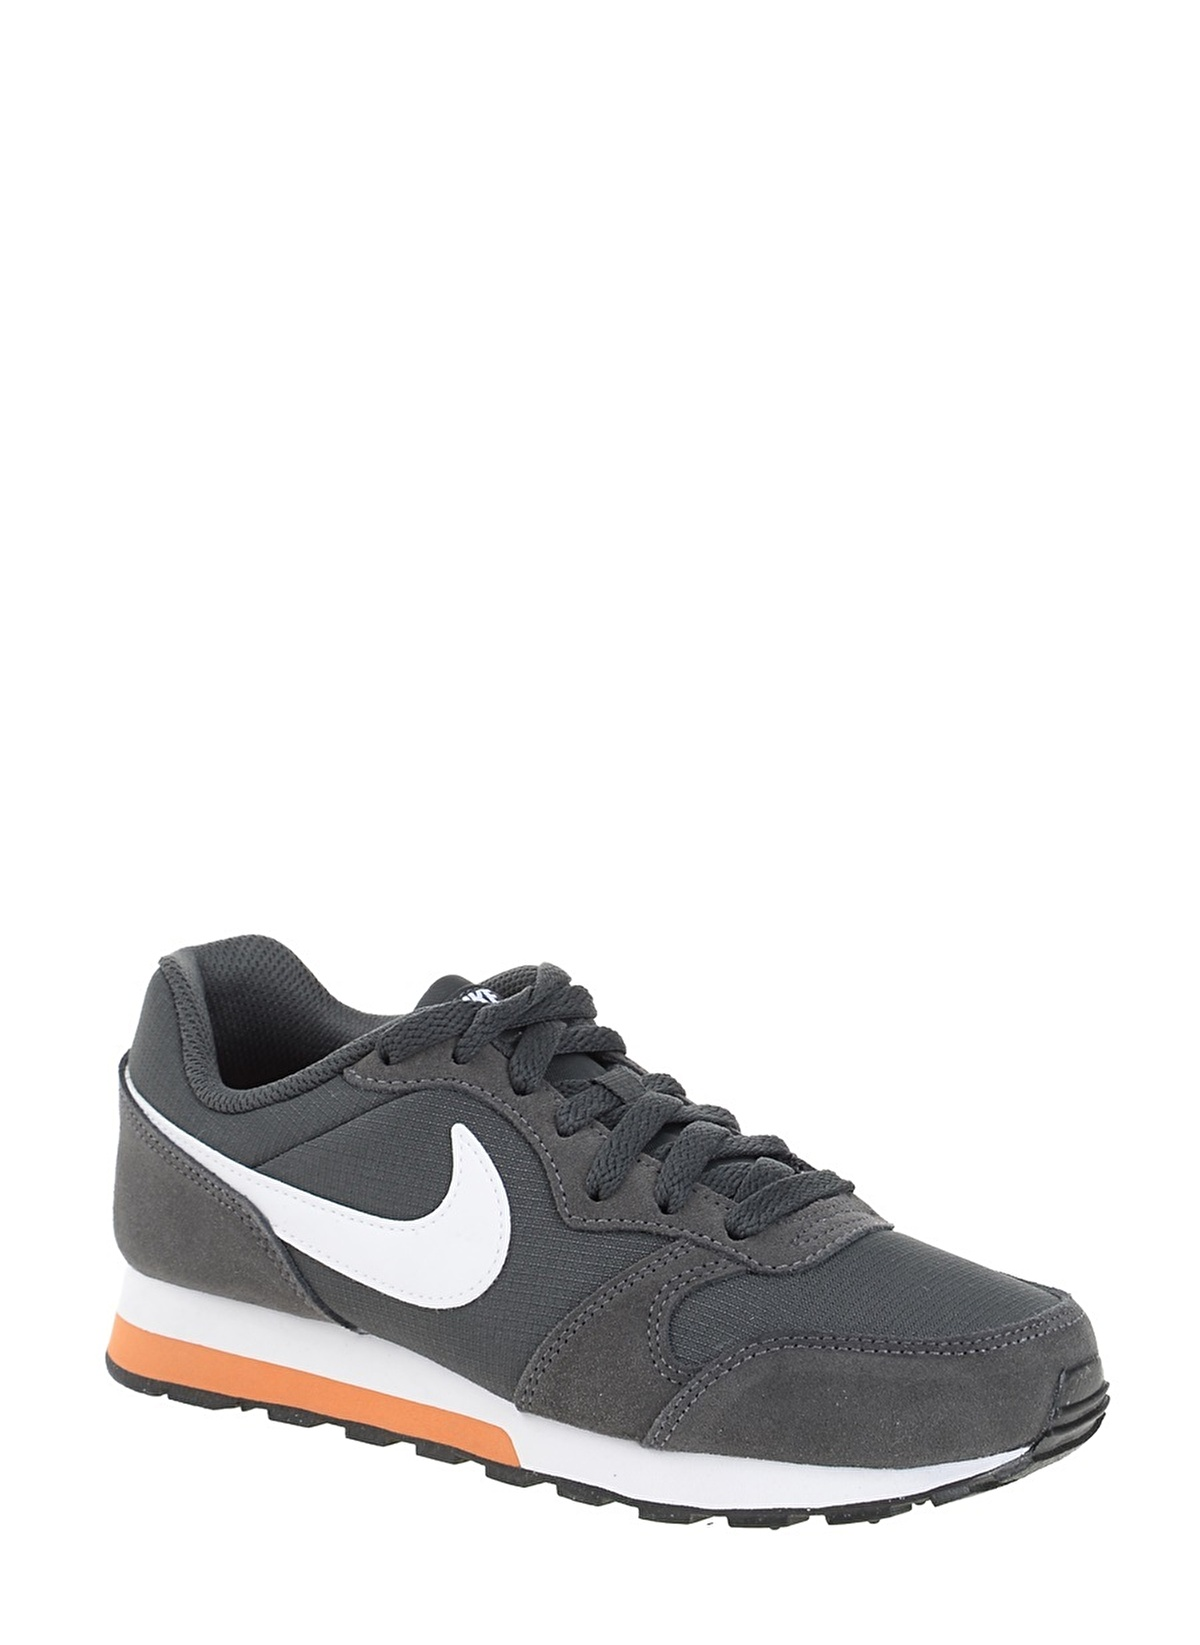 shoes nike md runner 2 807316 009 anthracite white terra